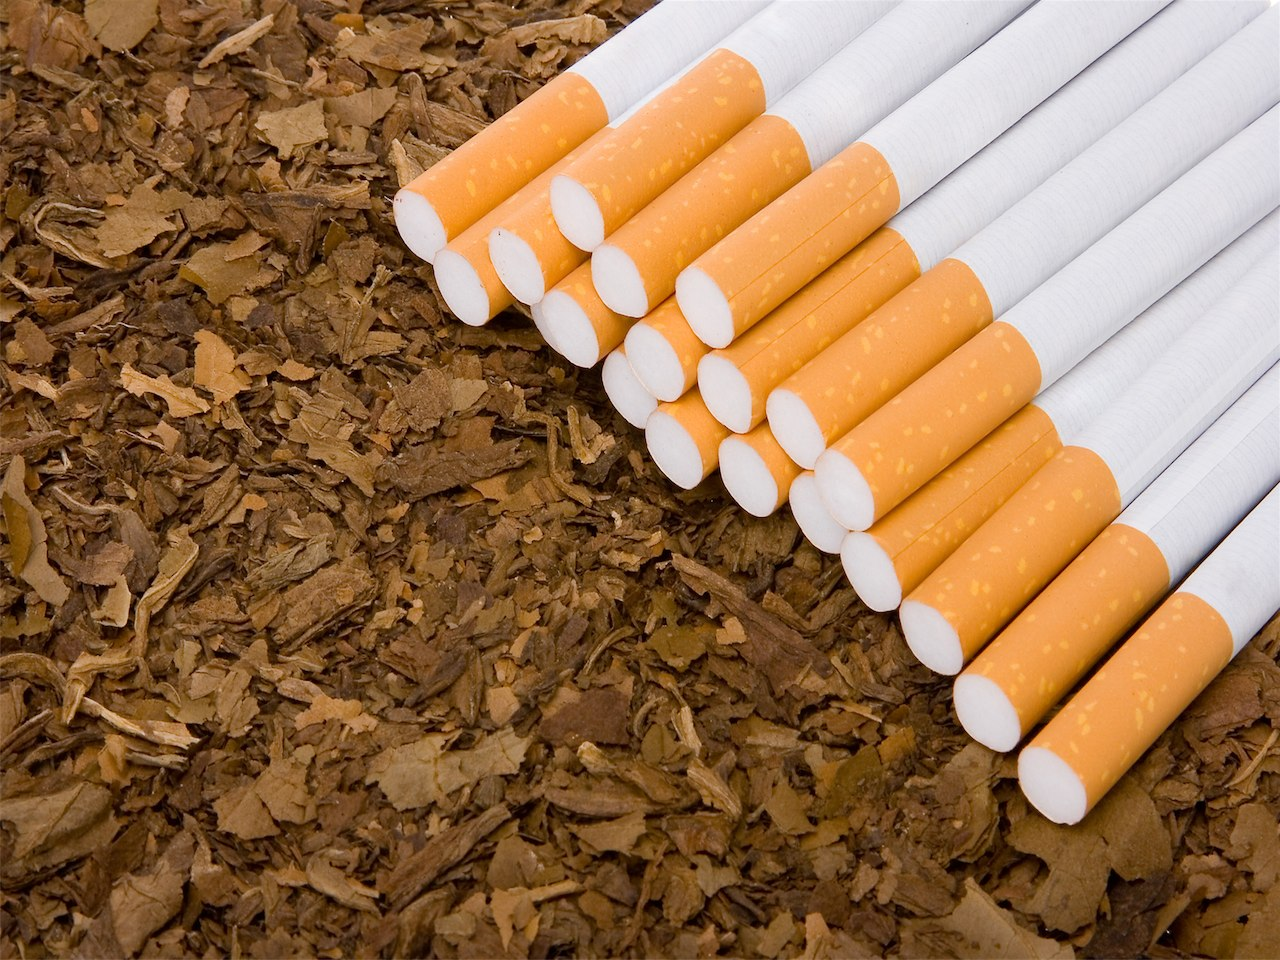 Over 21 percent use tobacco in Himachal, says minister